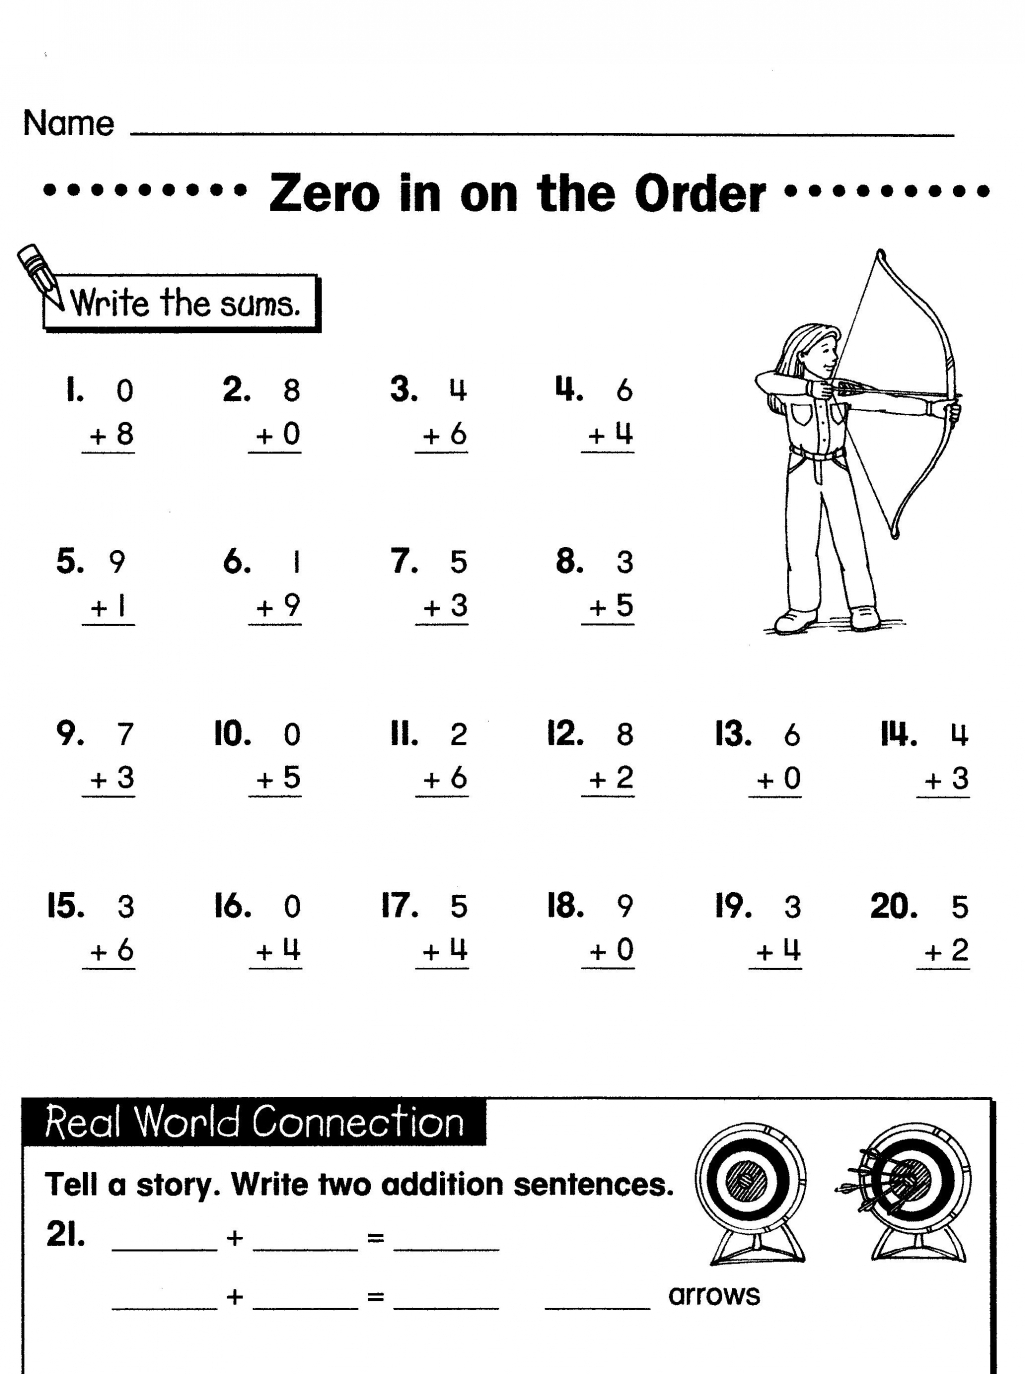 Printables 7th Grade Math Worksheets Pdf pdf math worksheets scalien free scalien